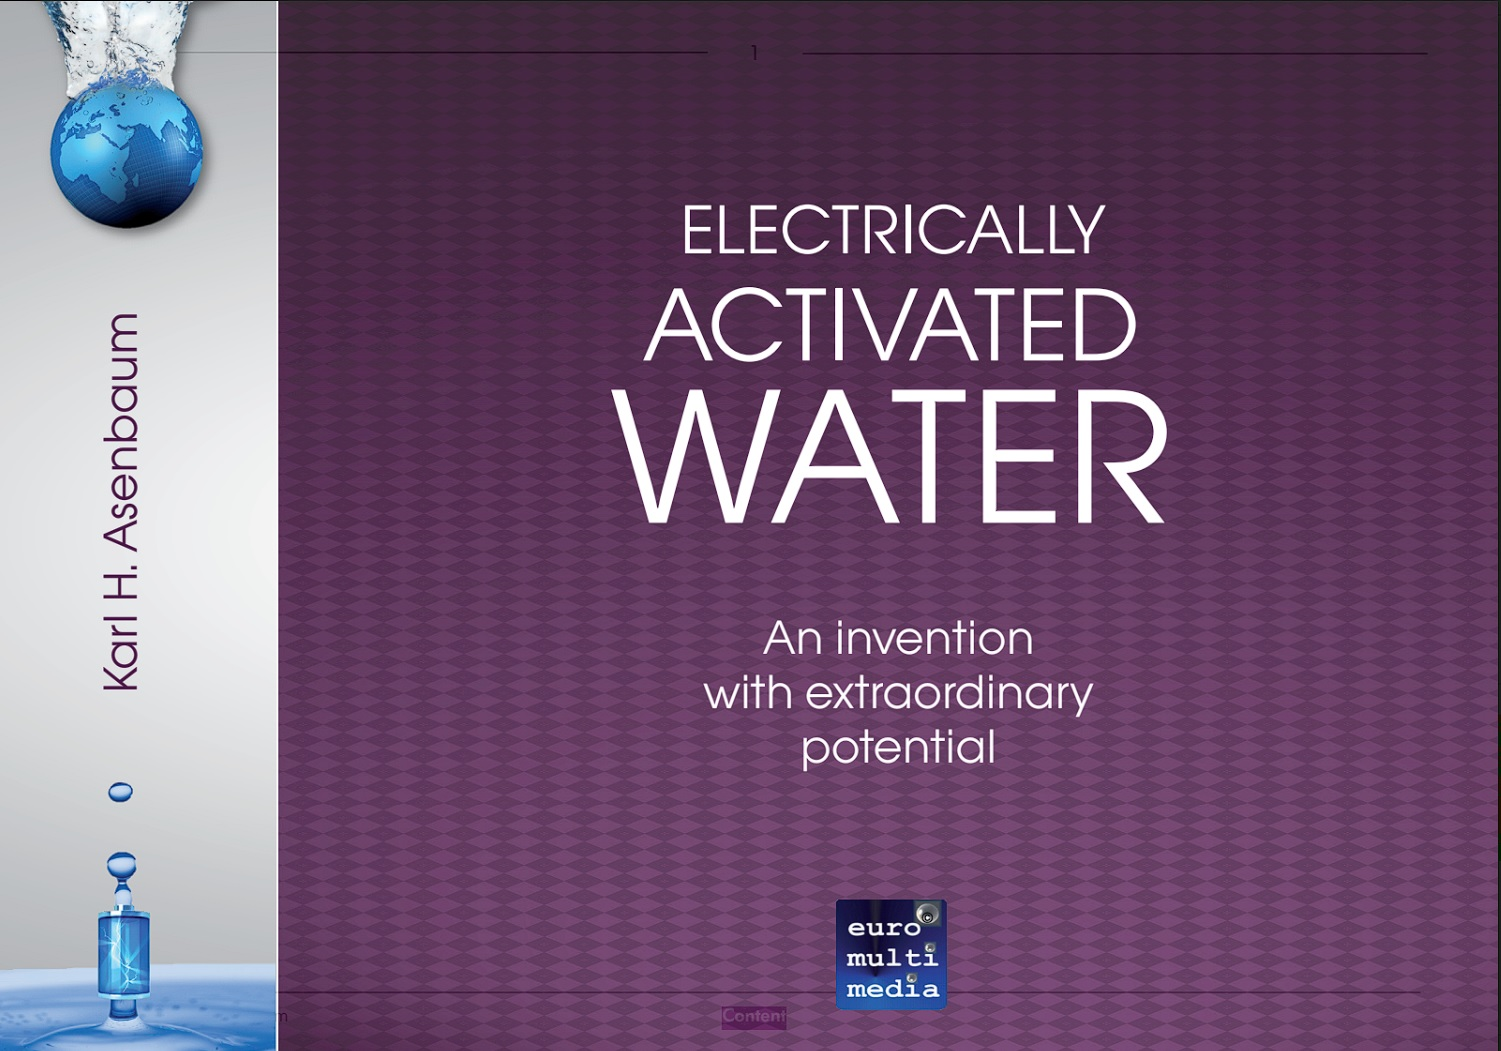 Electrically-Activated-Water-coveriyoKmYhTAJMhr